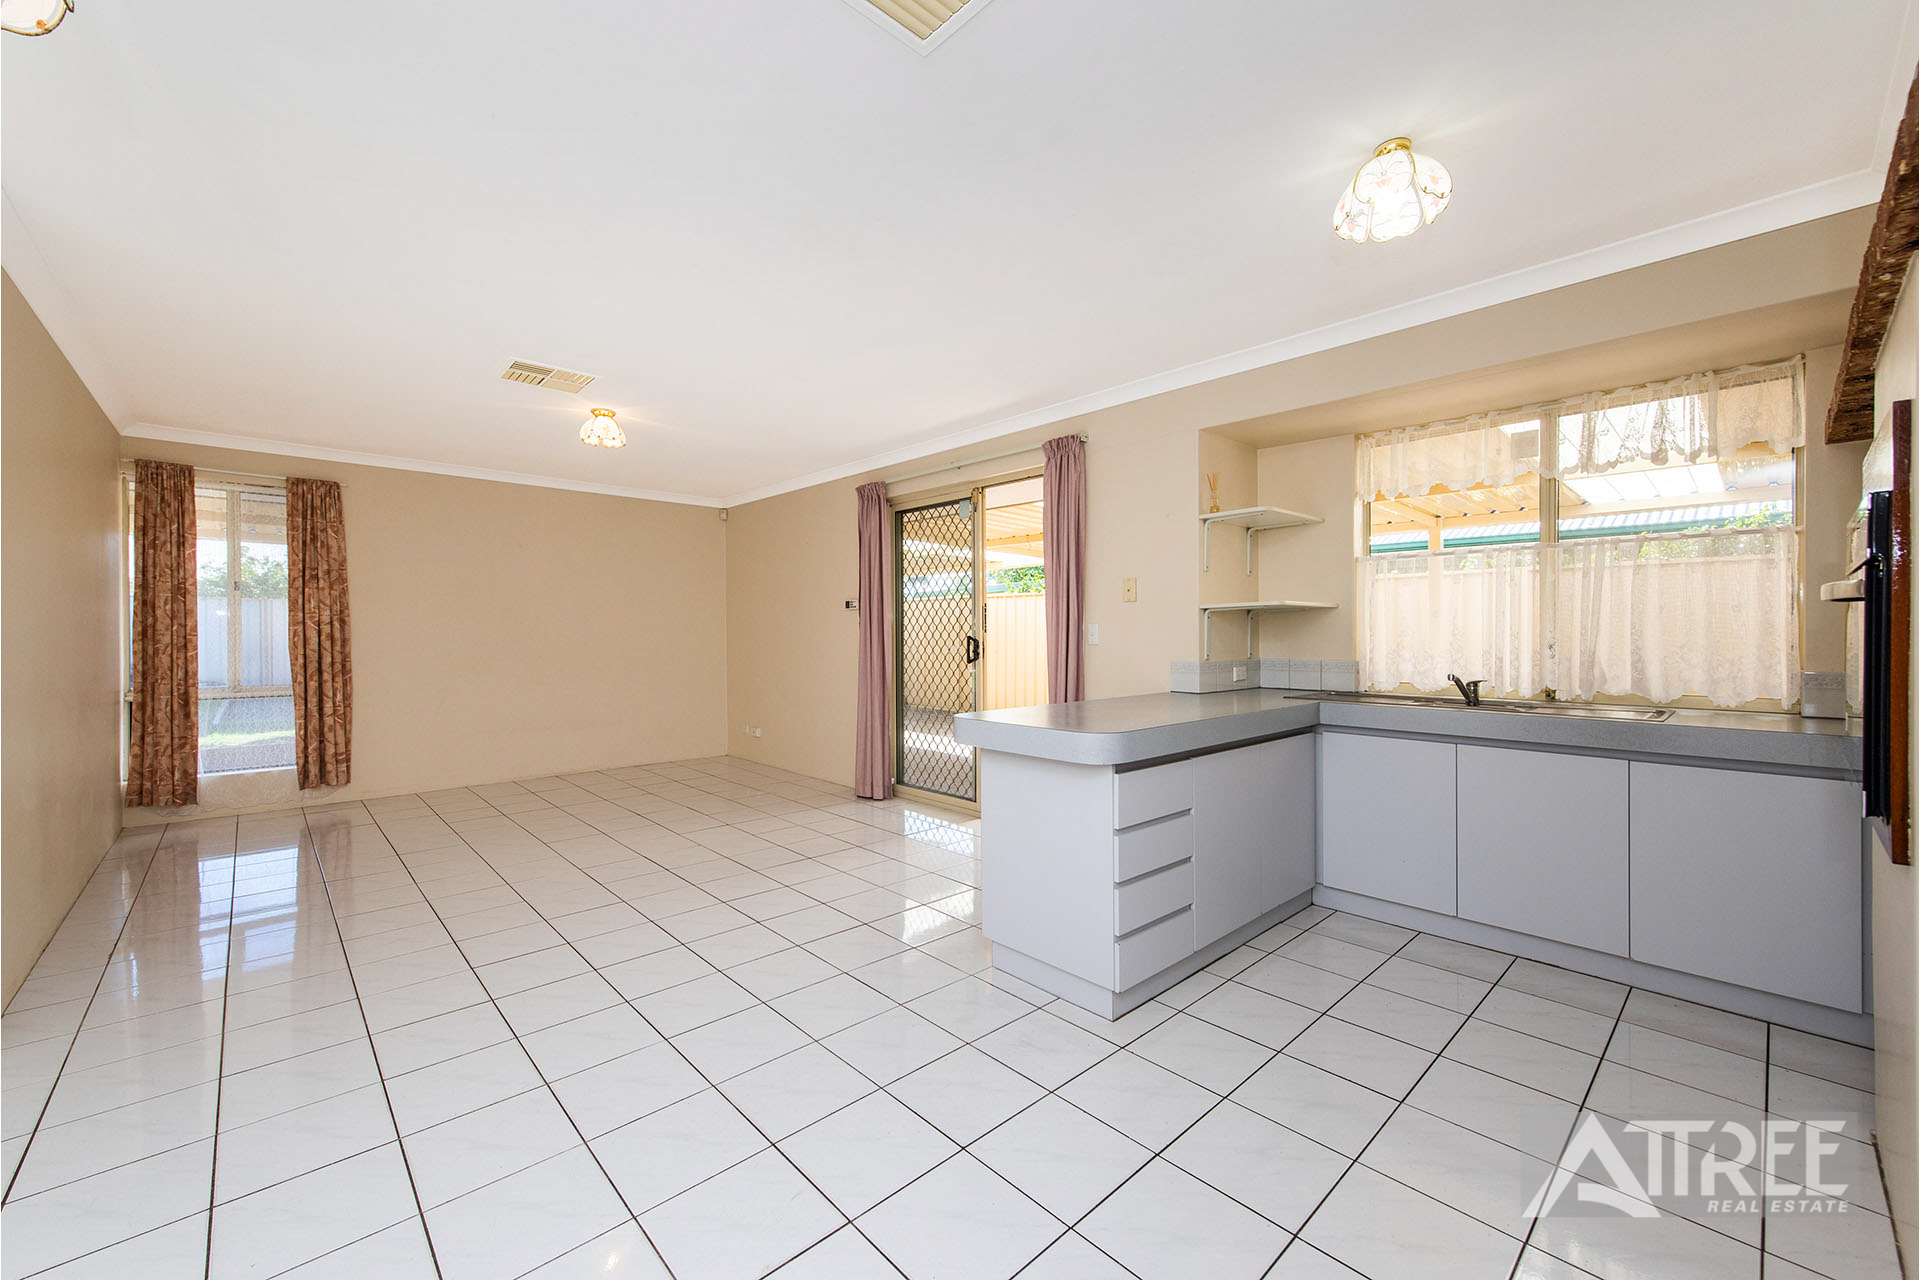 Property for sale in HUNTINGDALE, 33 Baxter Close : Attree Real Estate